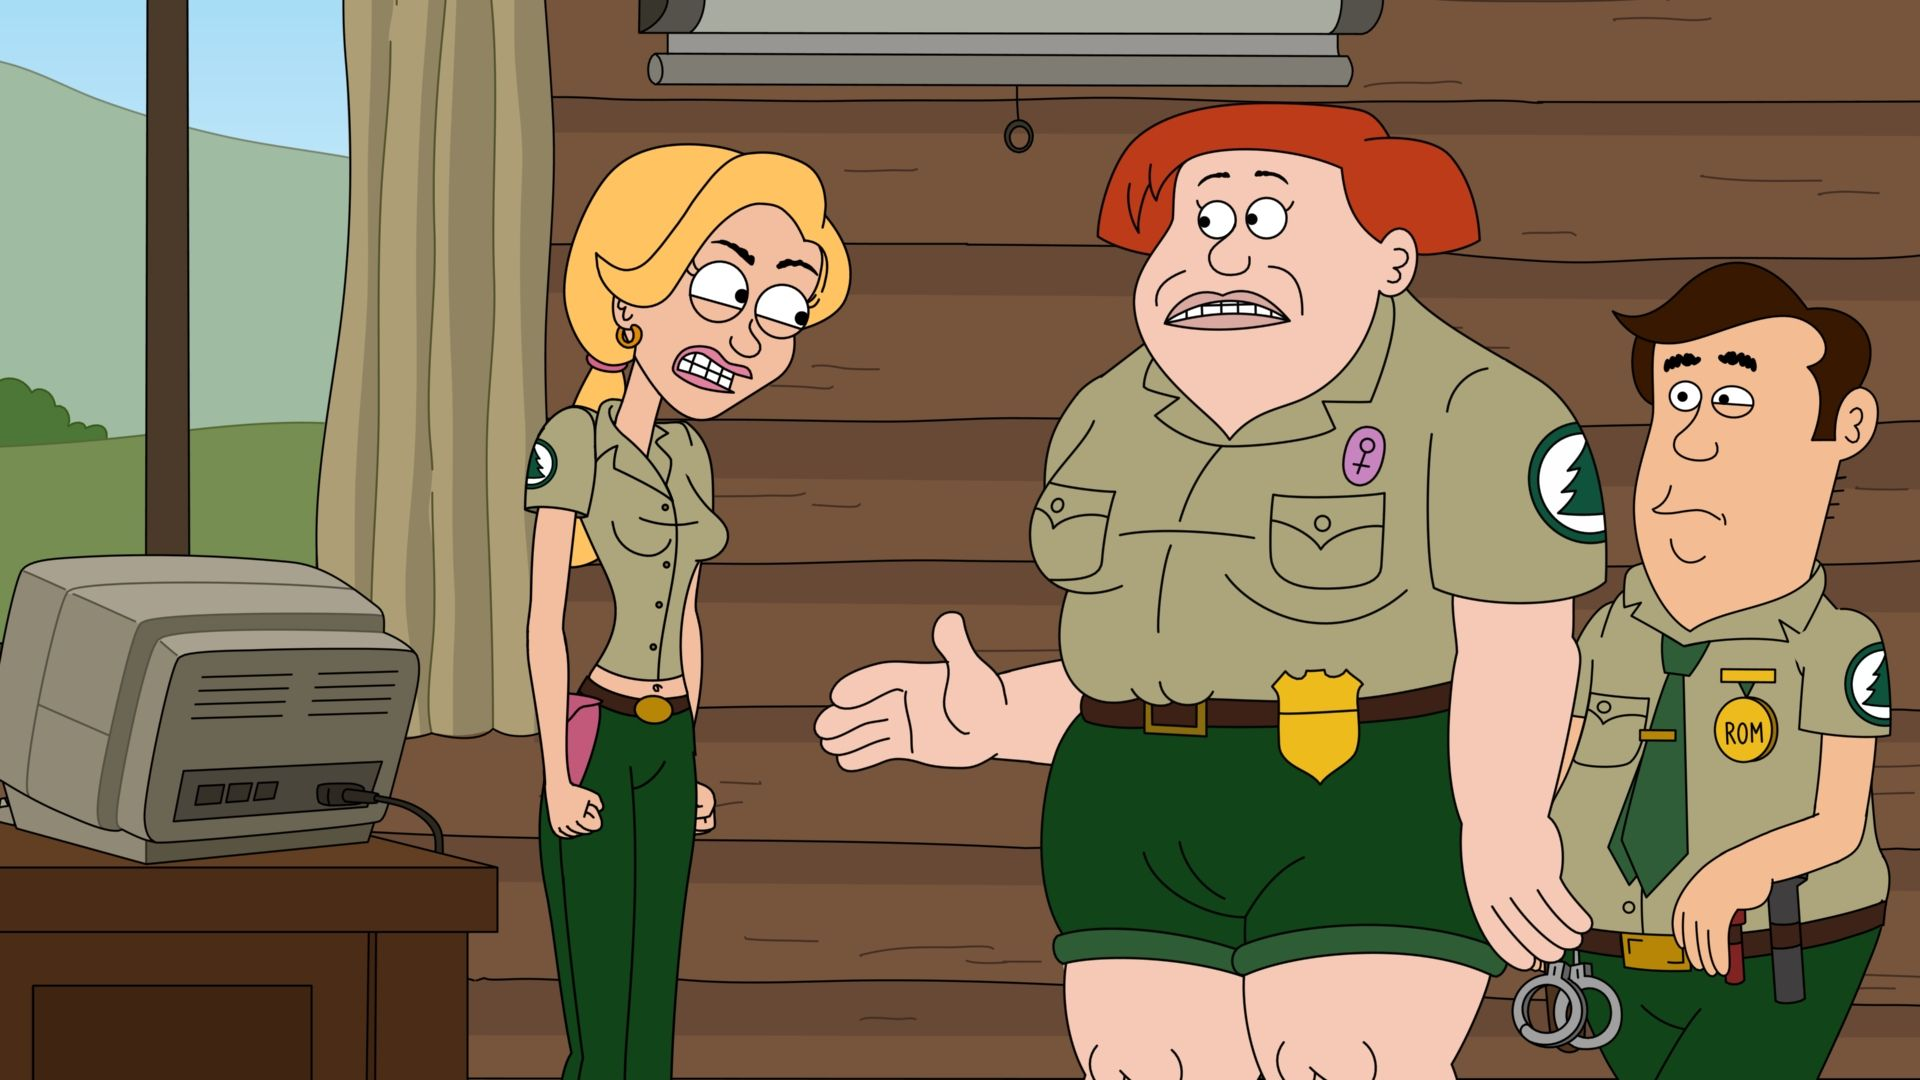 13a1e279a666f1f6d004cff4bb3b4fa0 welcome to brickleberry from the series premiere on september 25